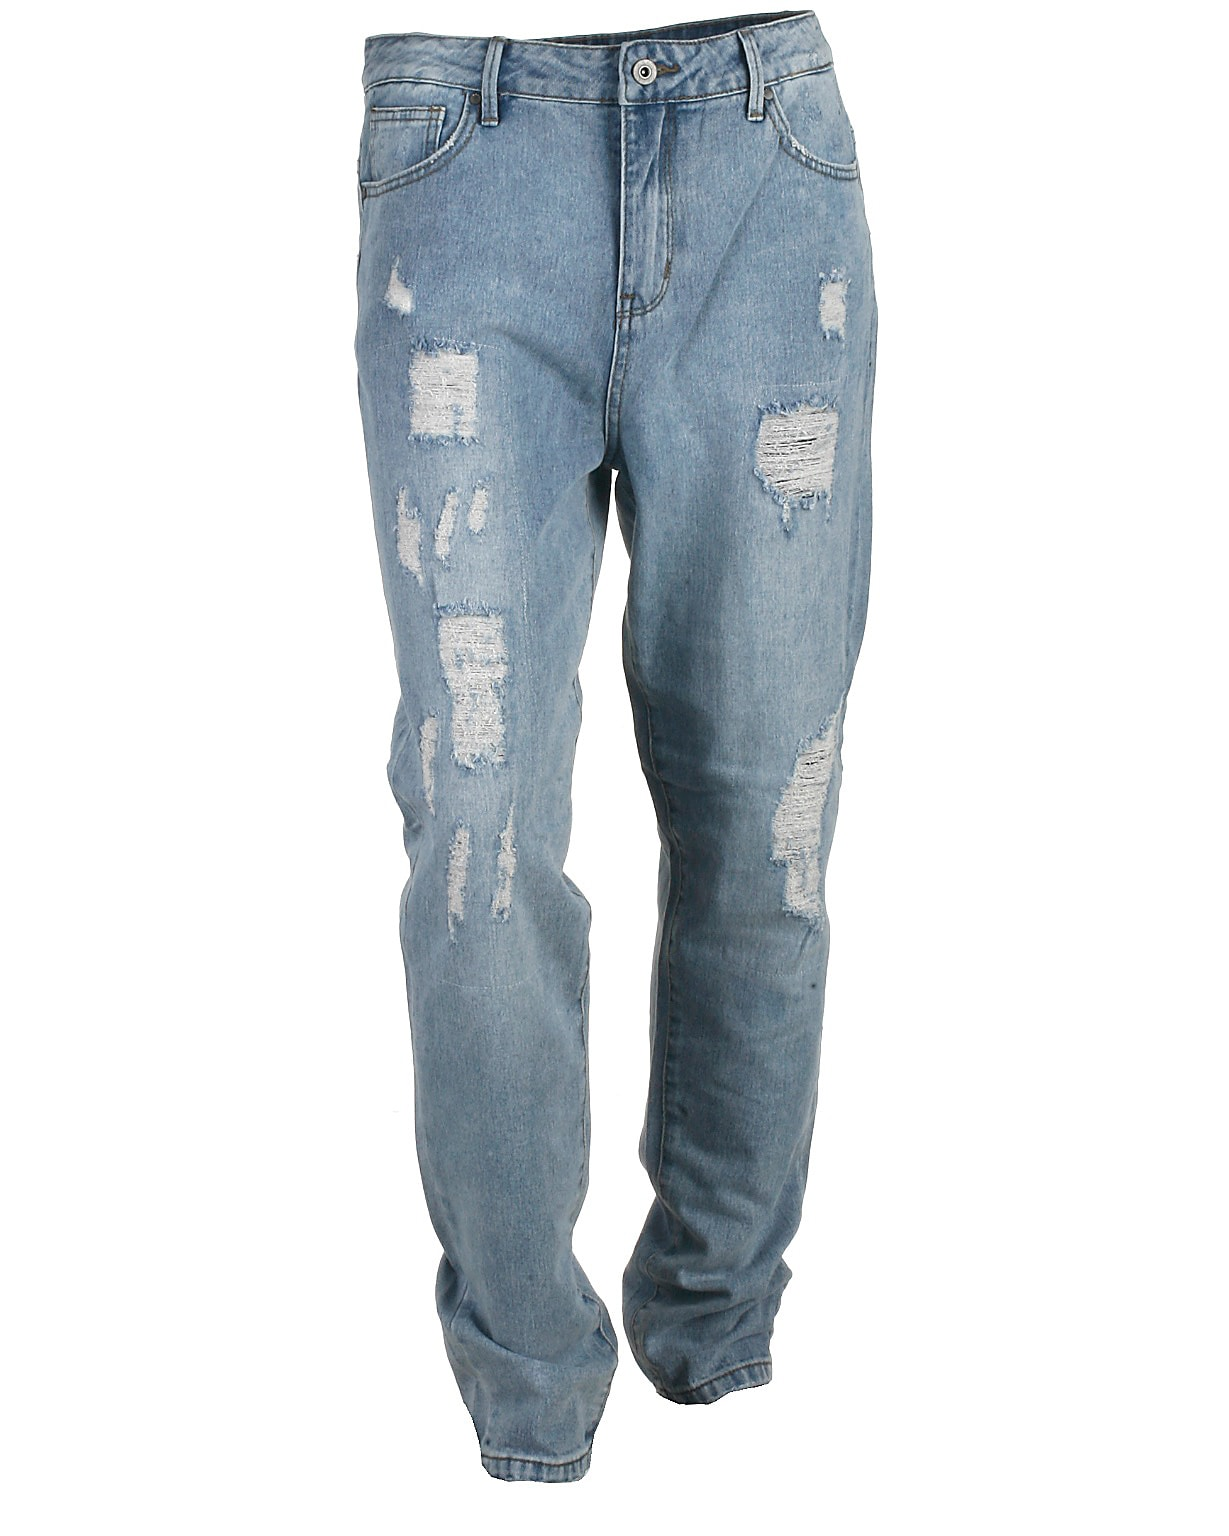 Image of Grunt jeans, winter blue, Carrot